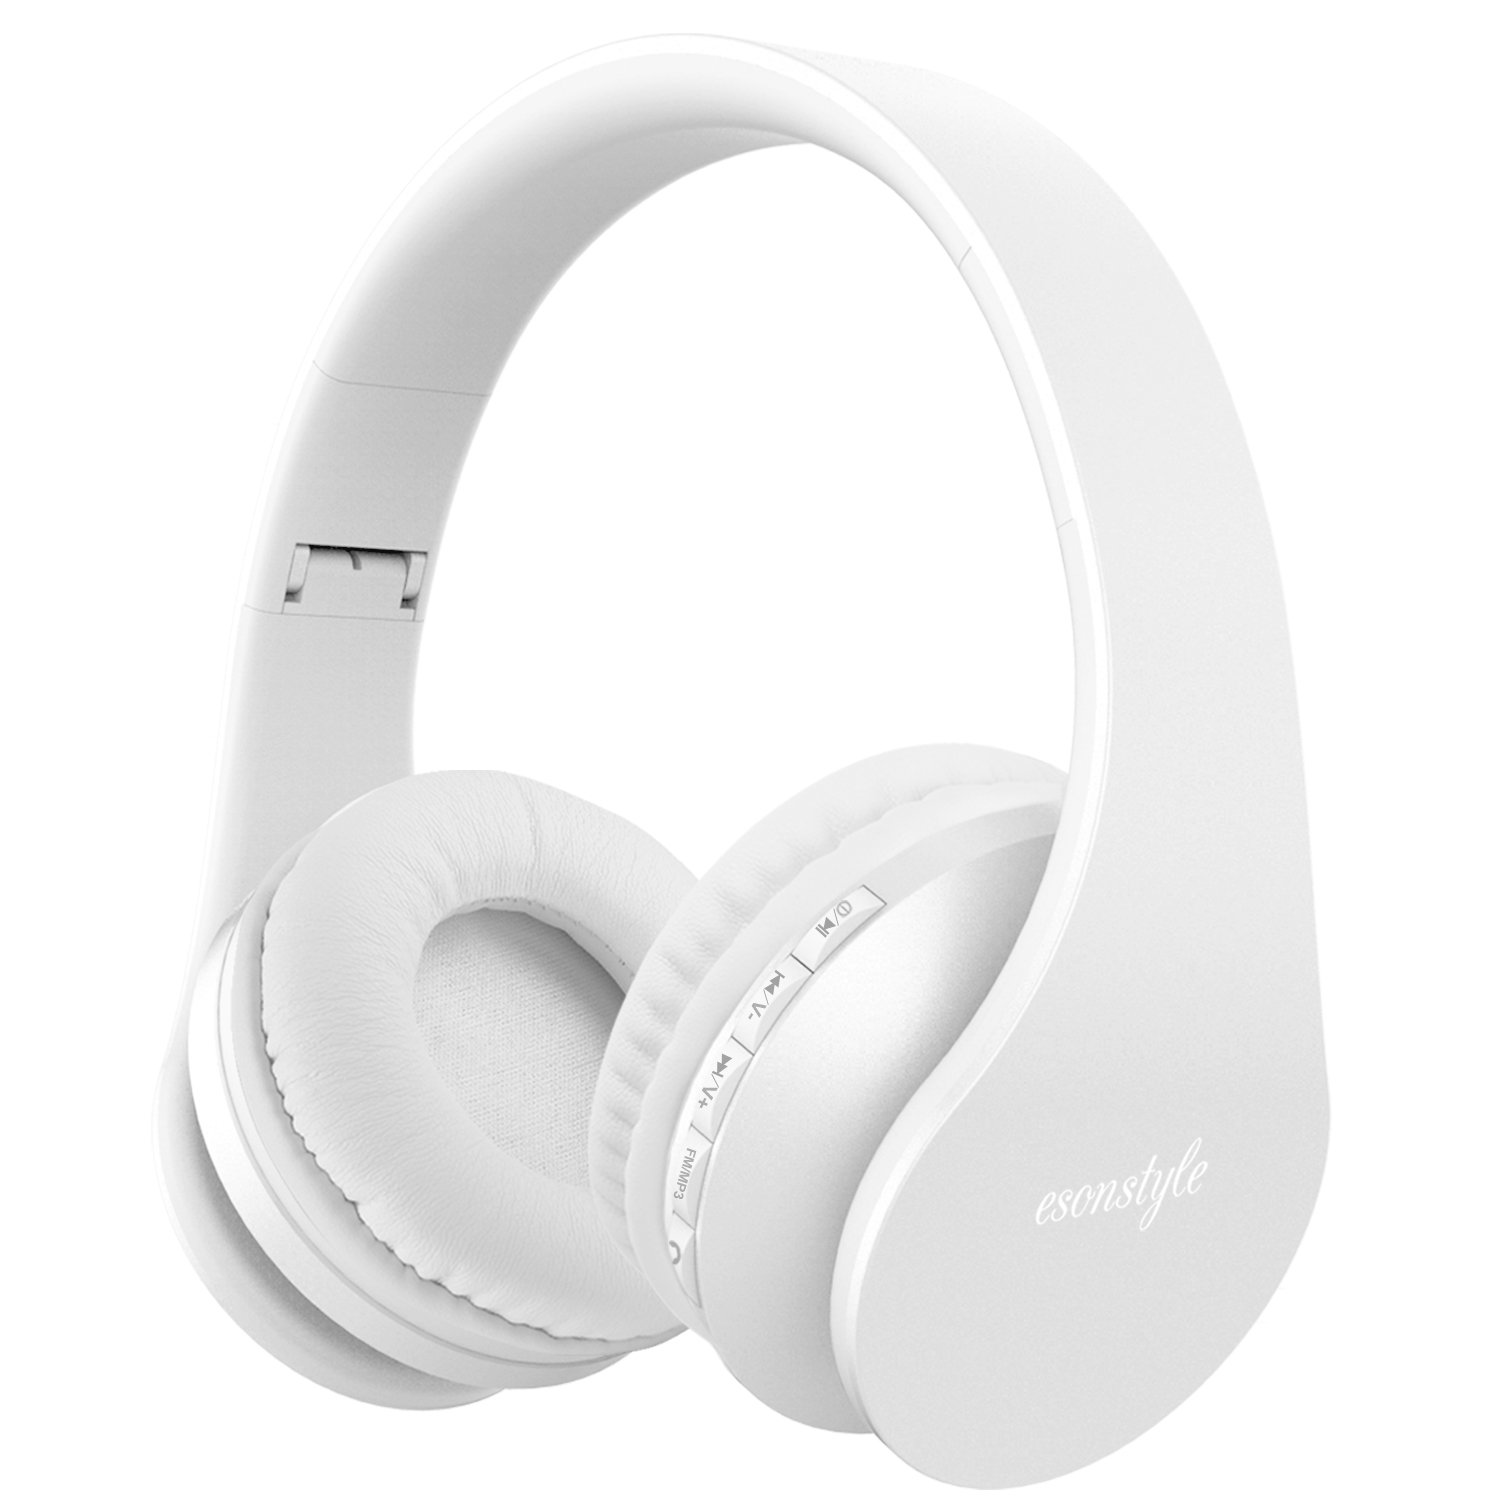 Esonstyle Foldable Wireless Bluetooth Over-ear Stereo Headphone Headset Earphones, Stereo Audio with Hands-free Calling Function and Noise Cancelling Audio Cable Included (white)